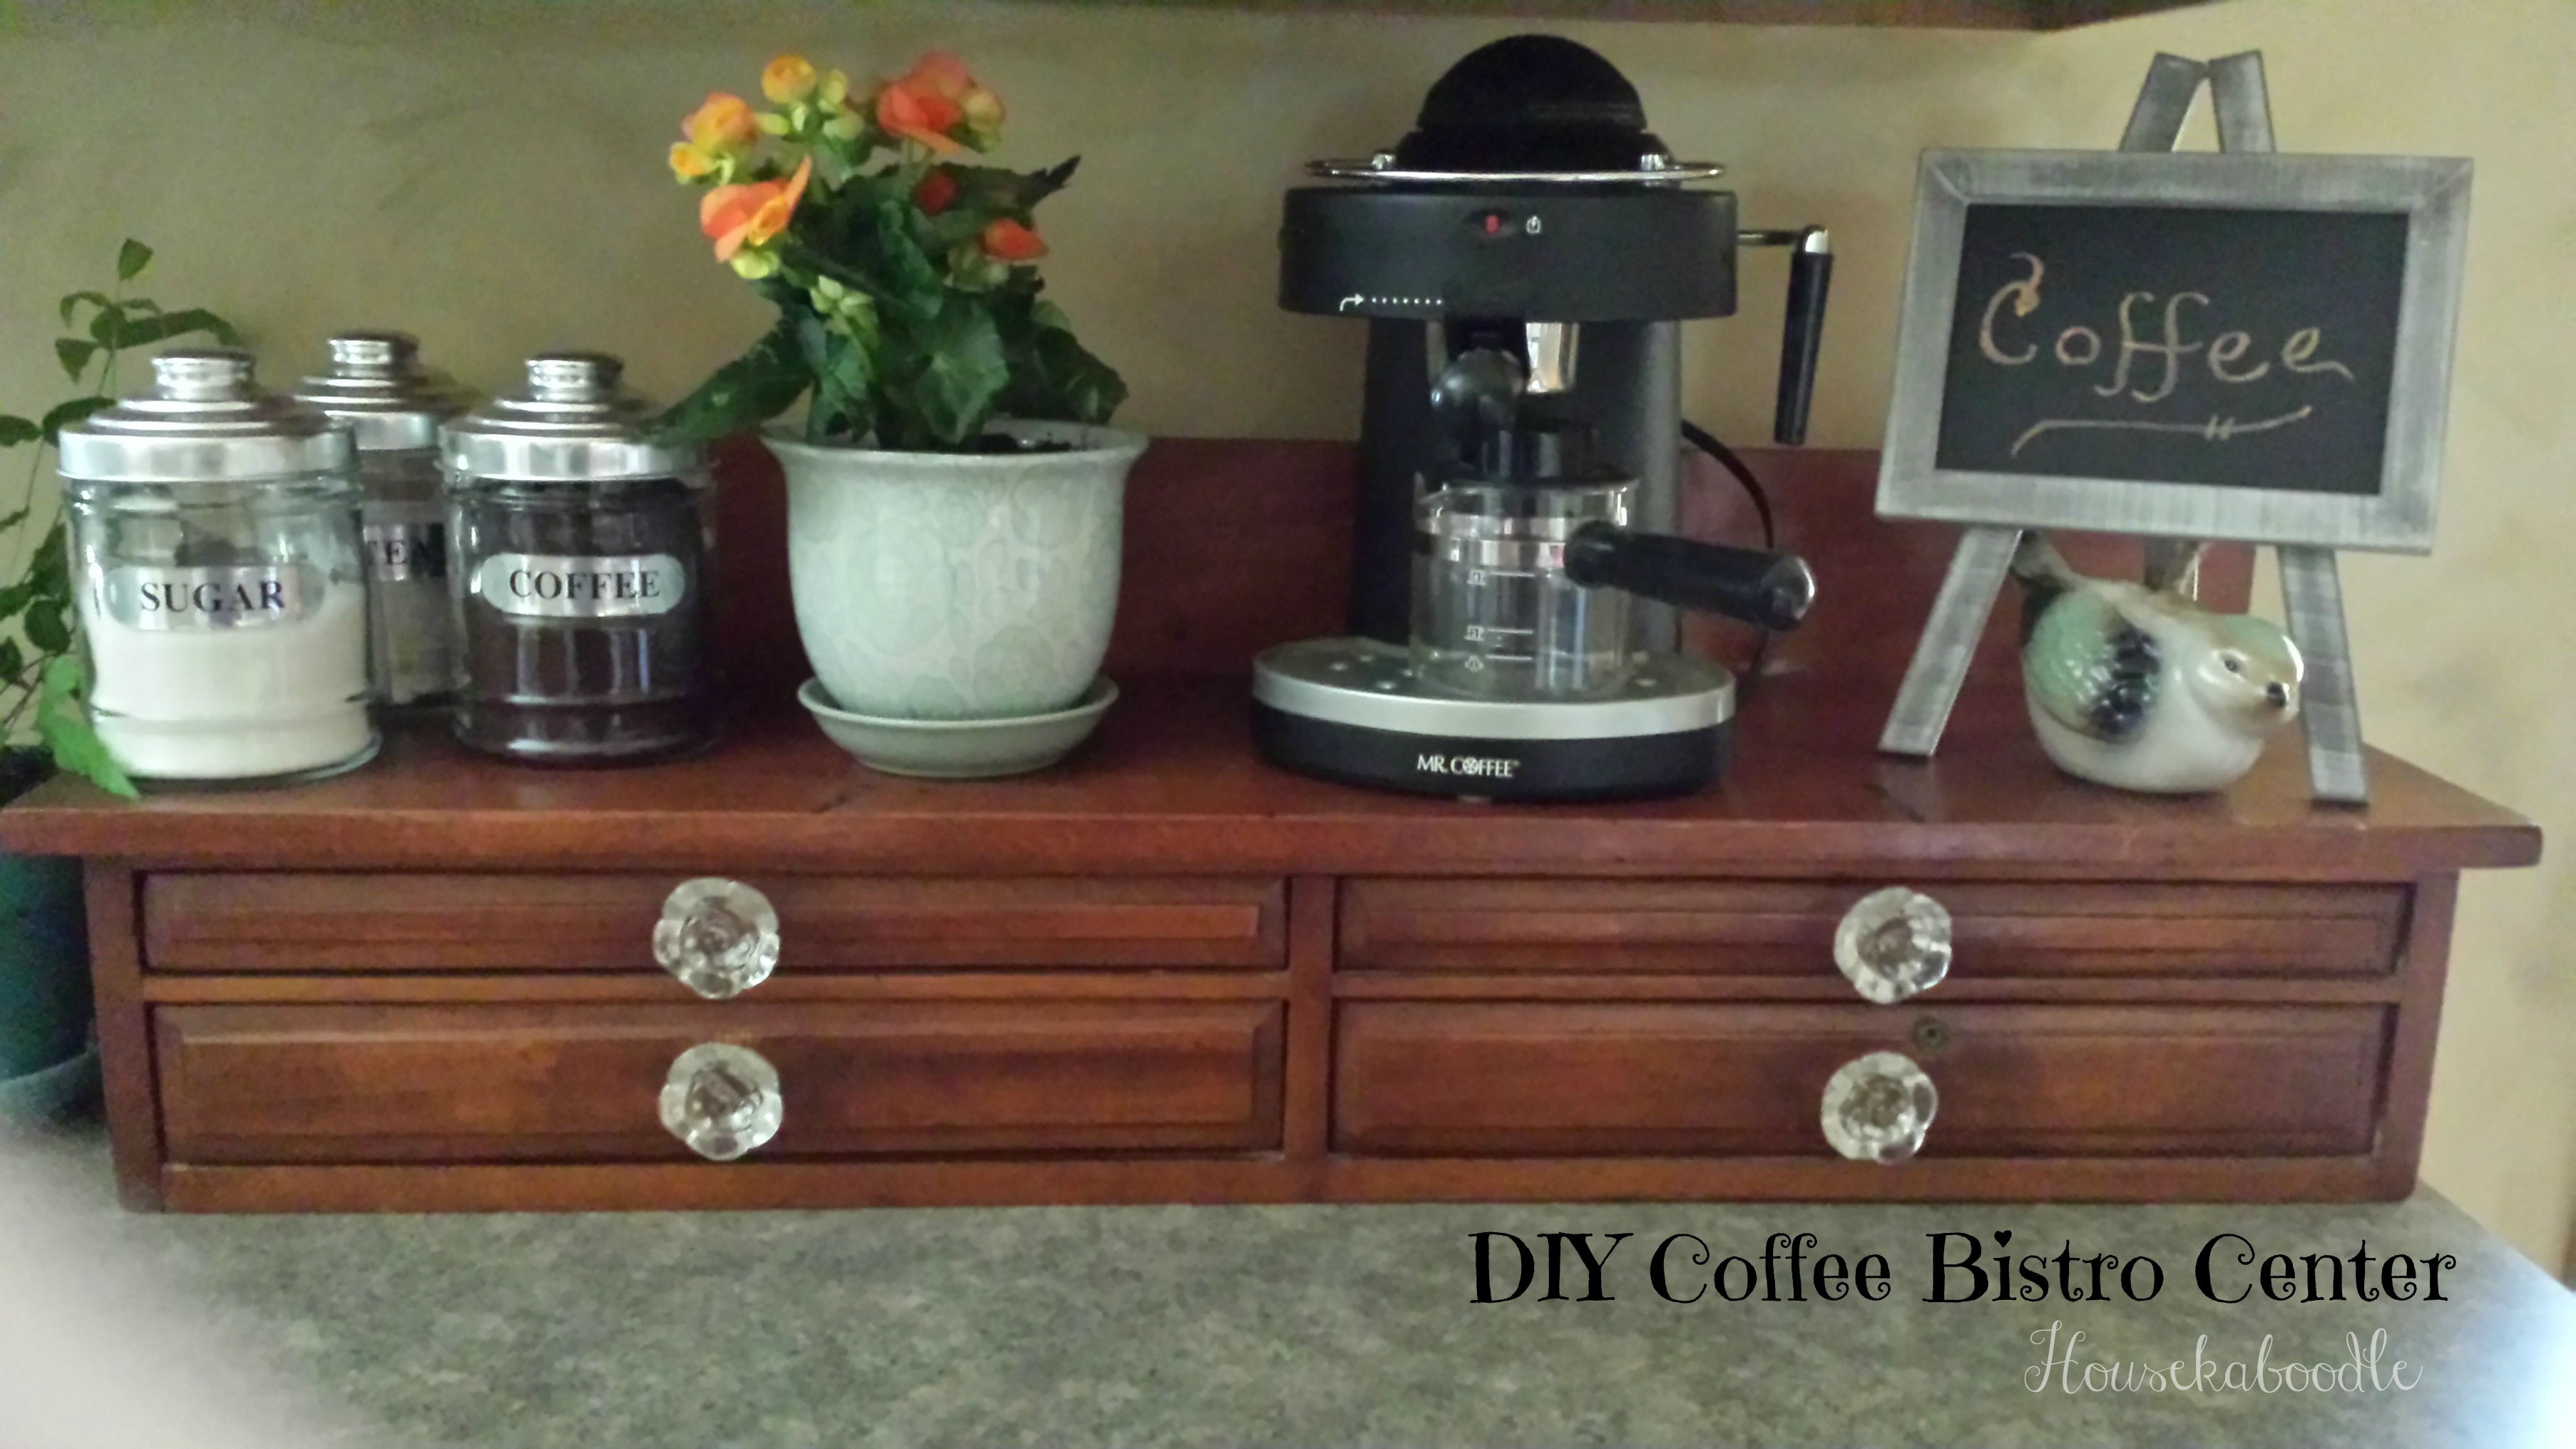 DIY Coffee Bistro Center - Housekaboodle